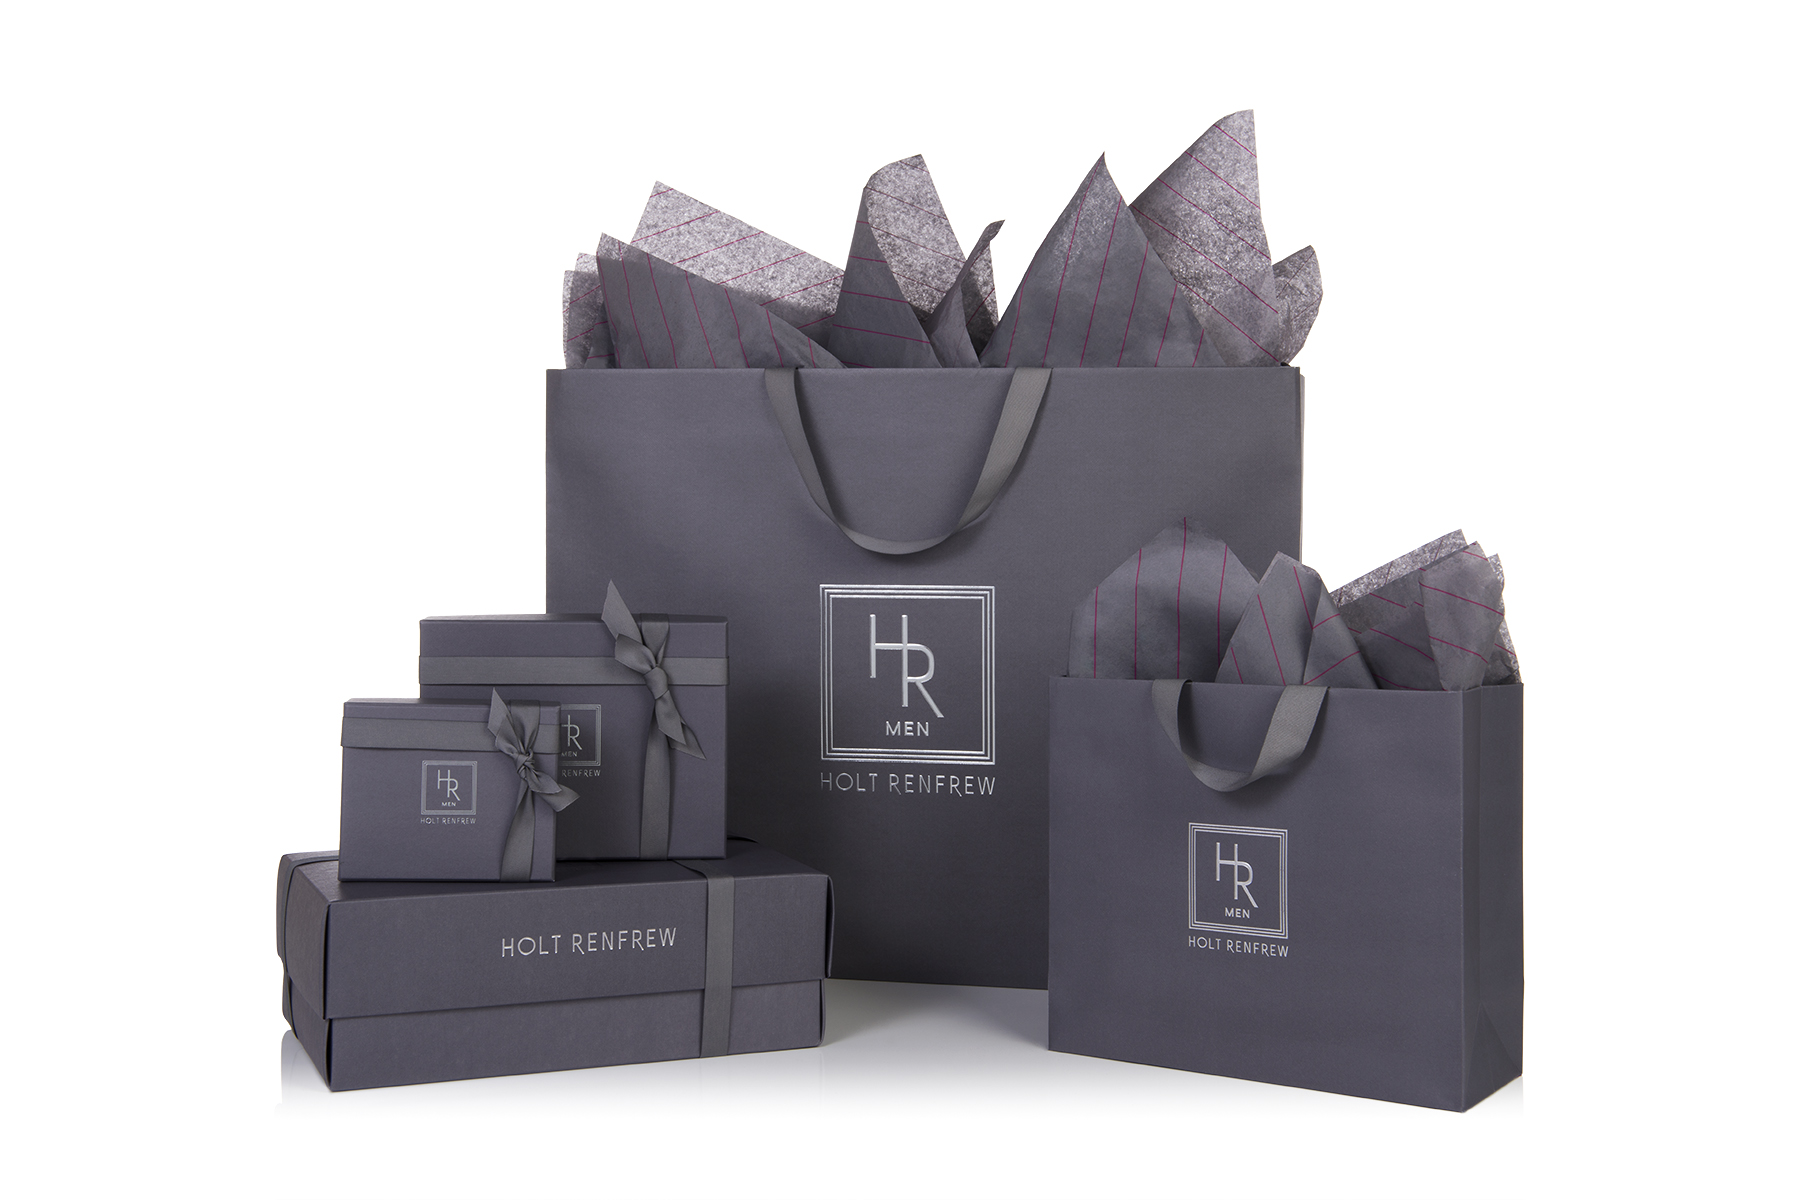 Packaging designed specifically for the new store, distinguishing it from Holt Renfrew's trademark magenta colouring. Photo: Holt Renfrew.